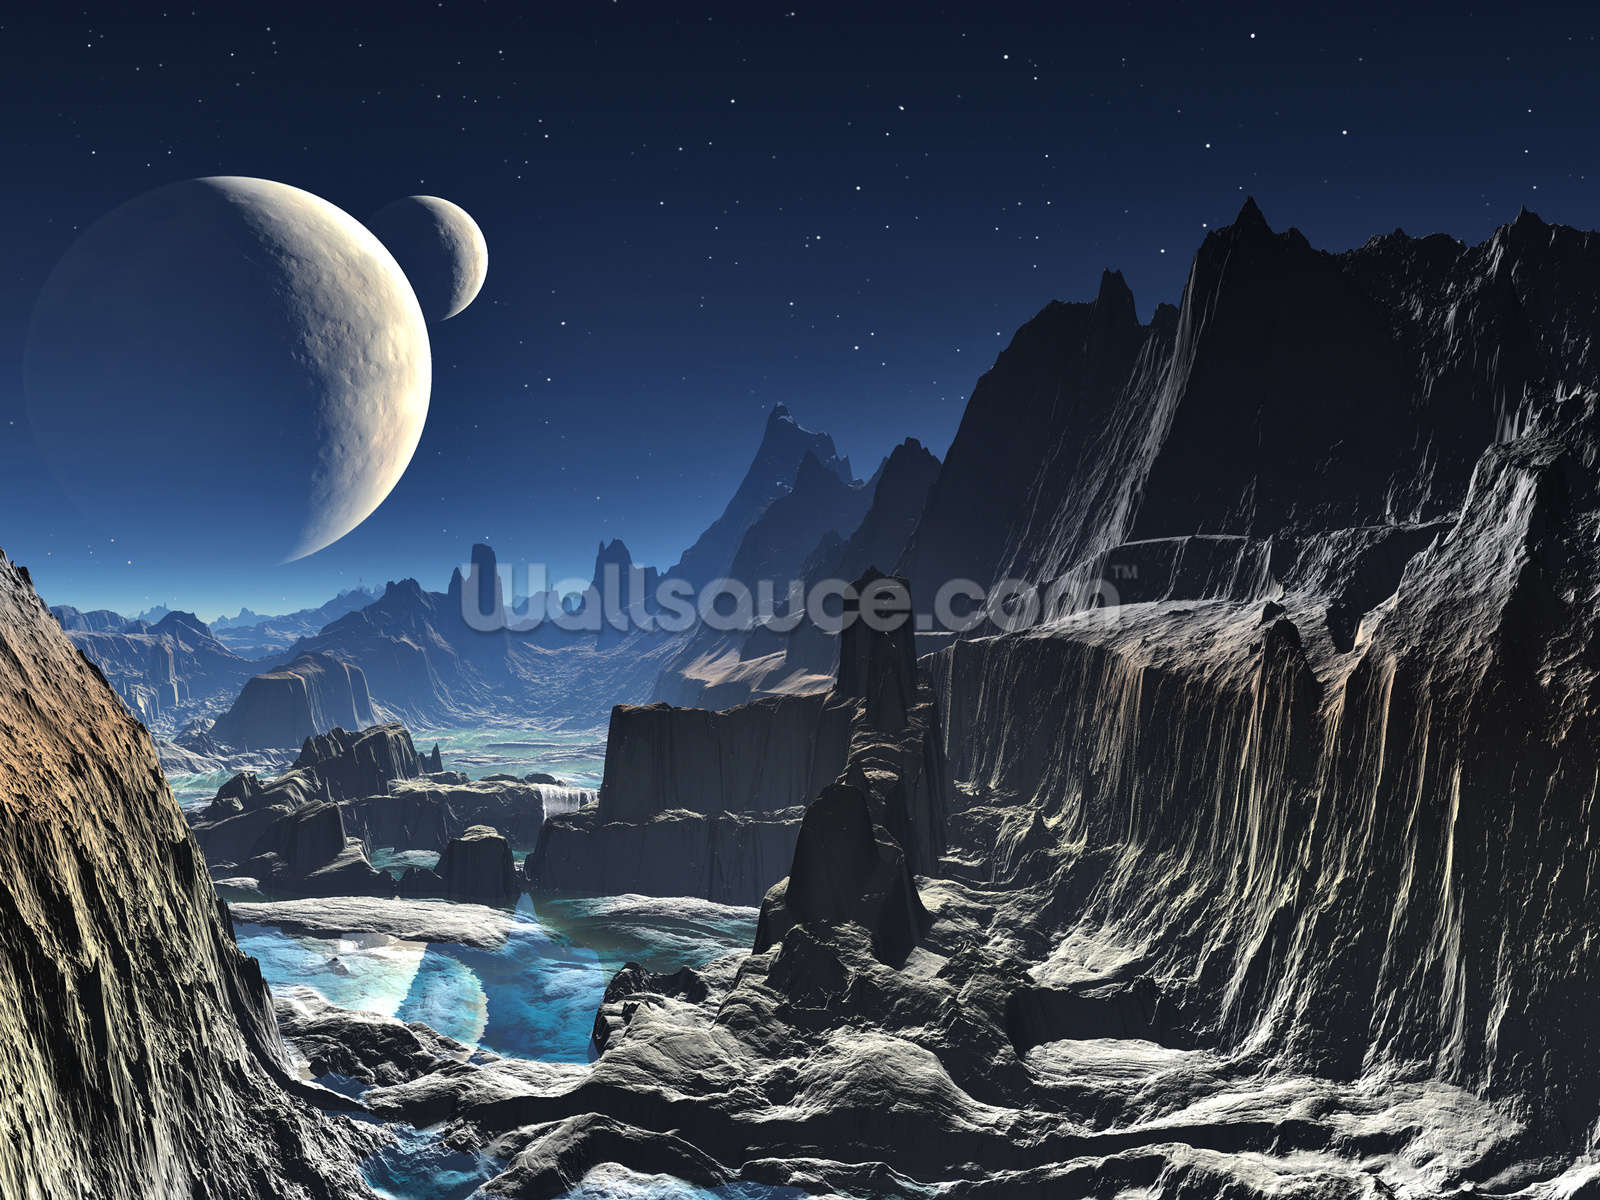 moonlit alien valley canyon wallpaper wall mural wallsauce usa moonlit alien valley canyon wall mural photo wallpaper